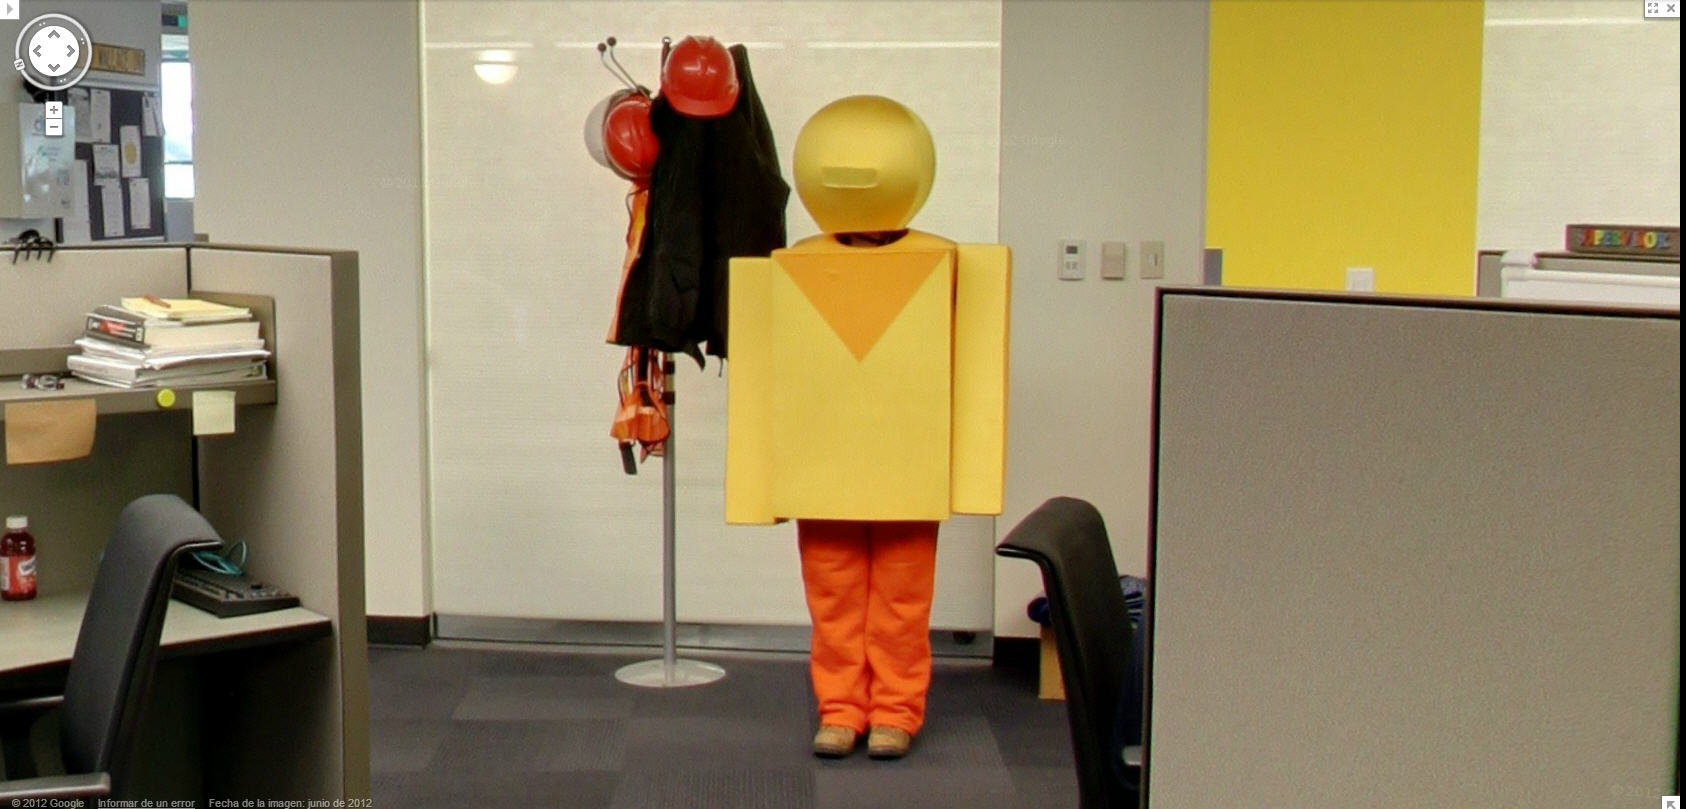 google-street-view-captures-the-peg-man-great-halloween-costume